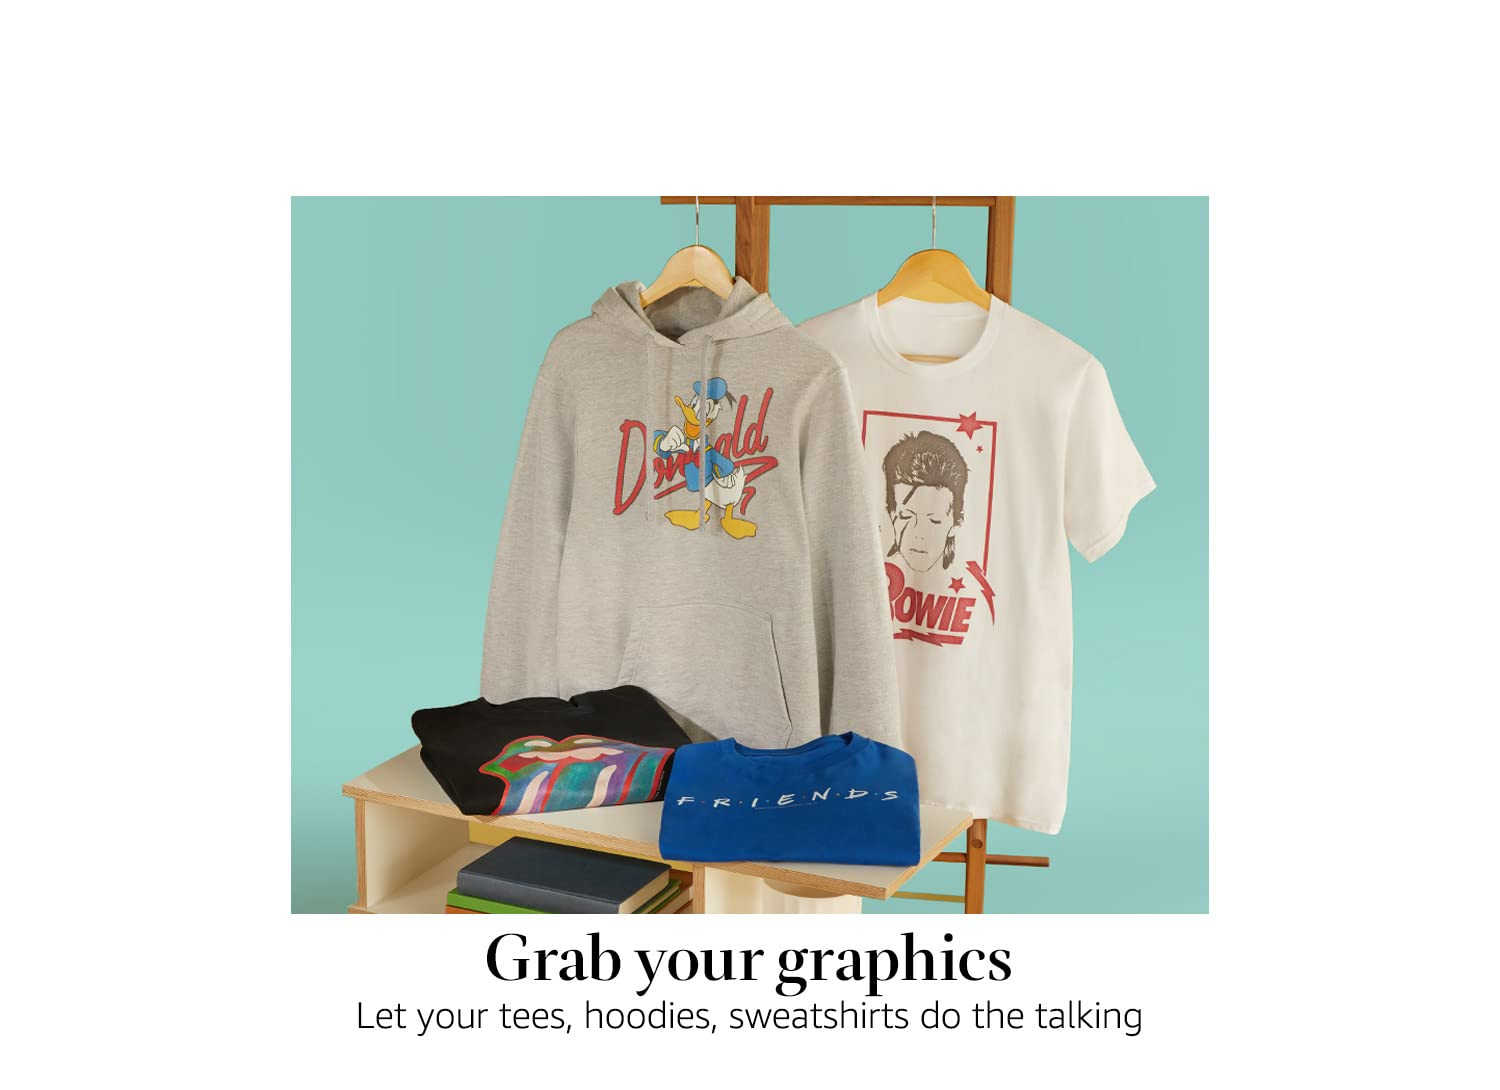 Grab your graphics